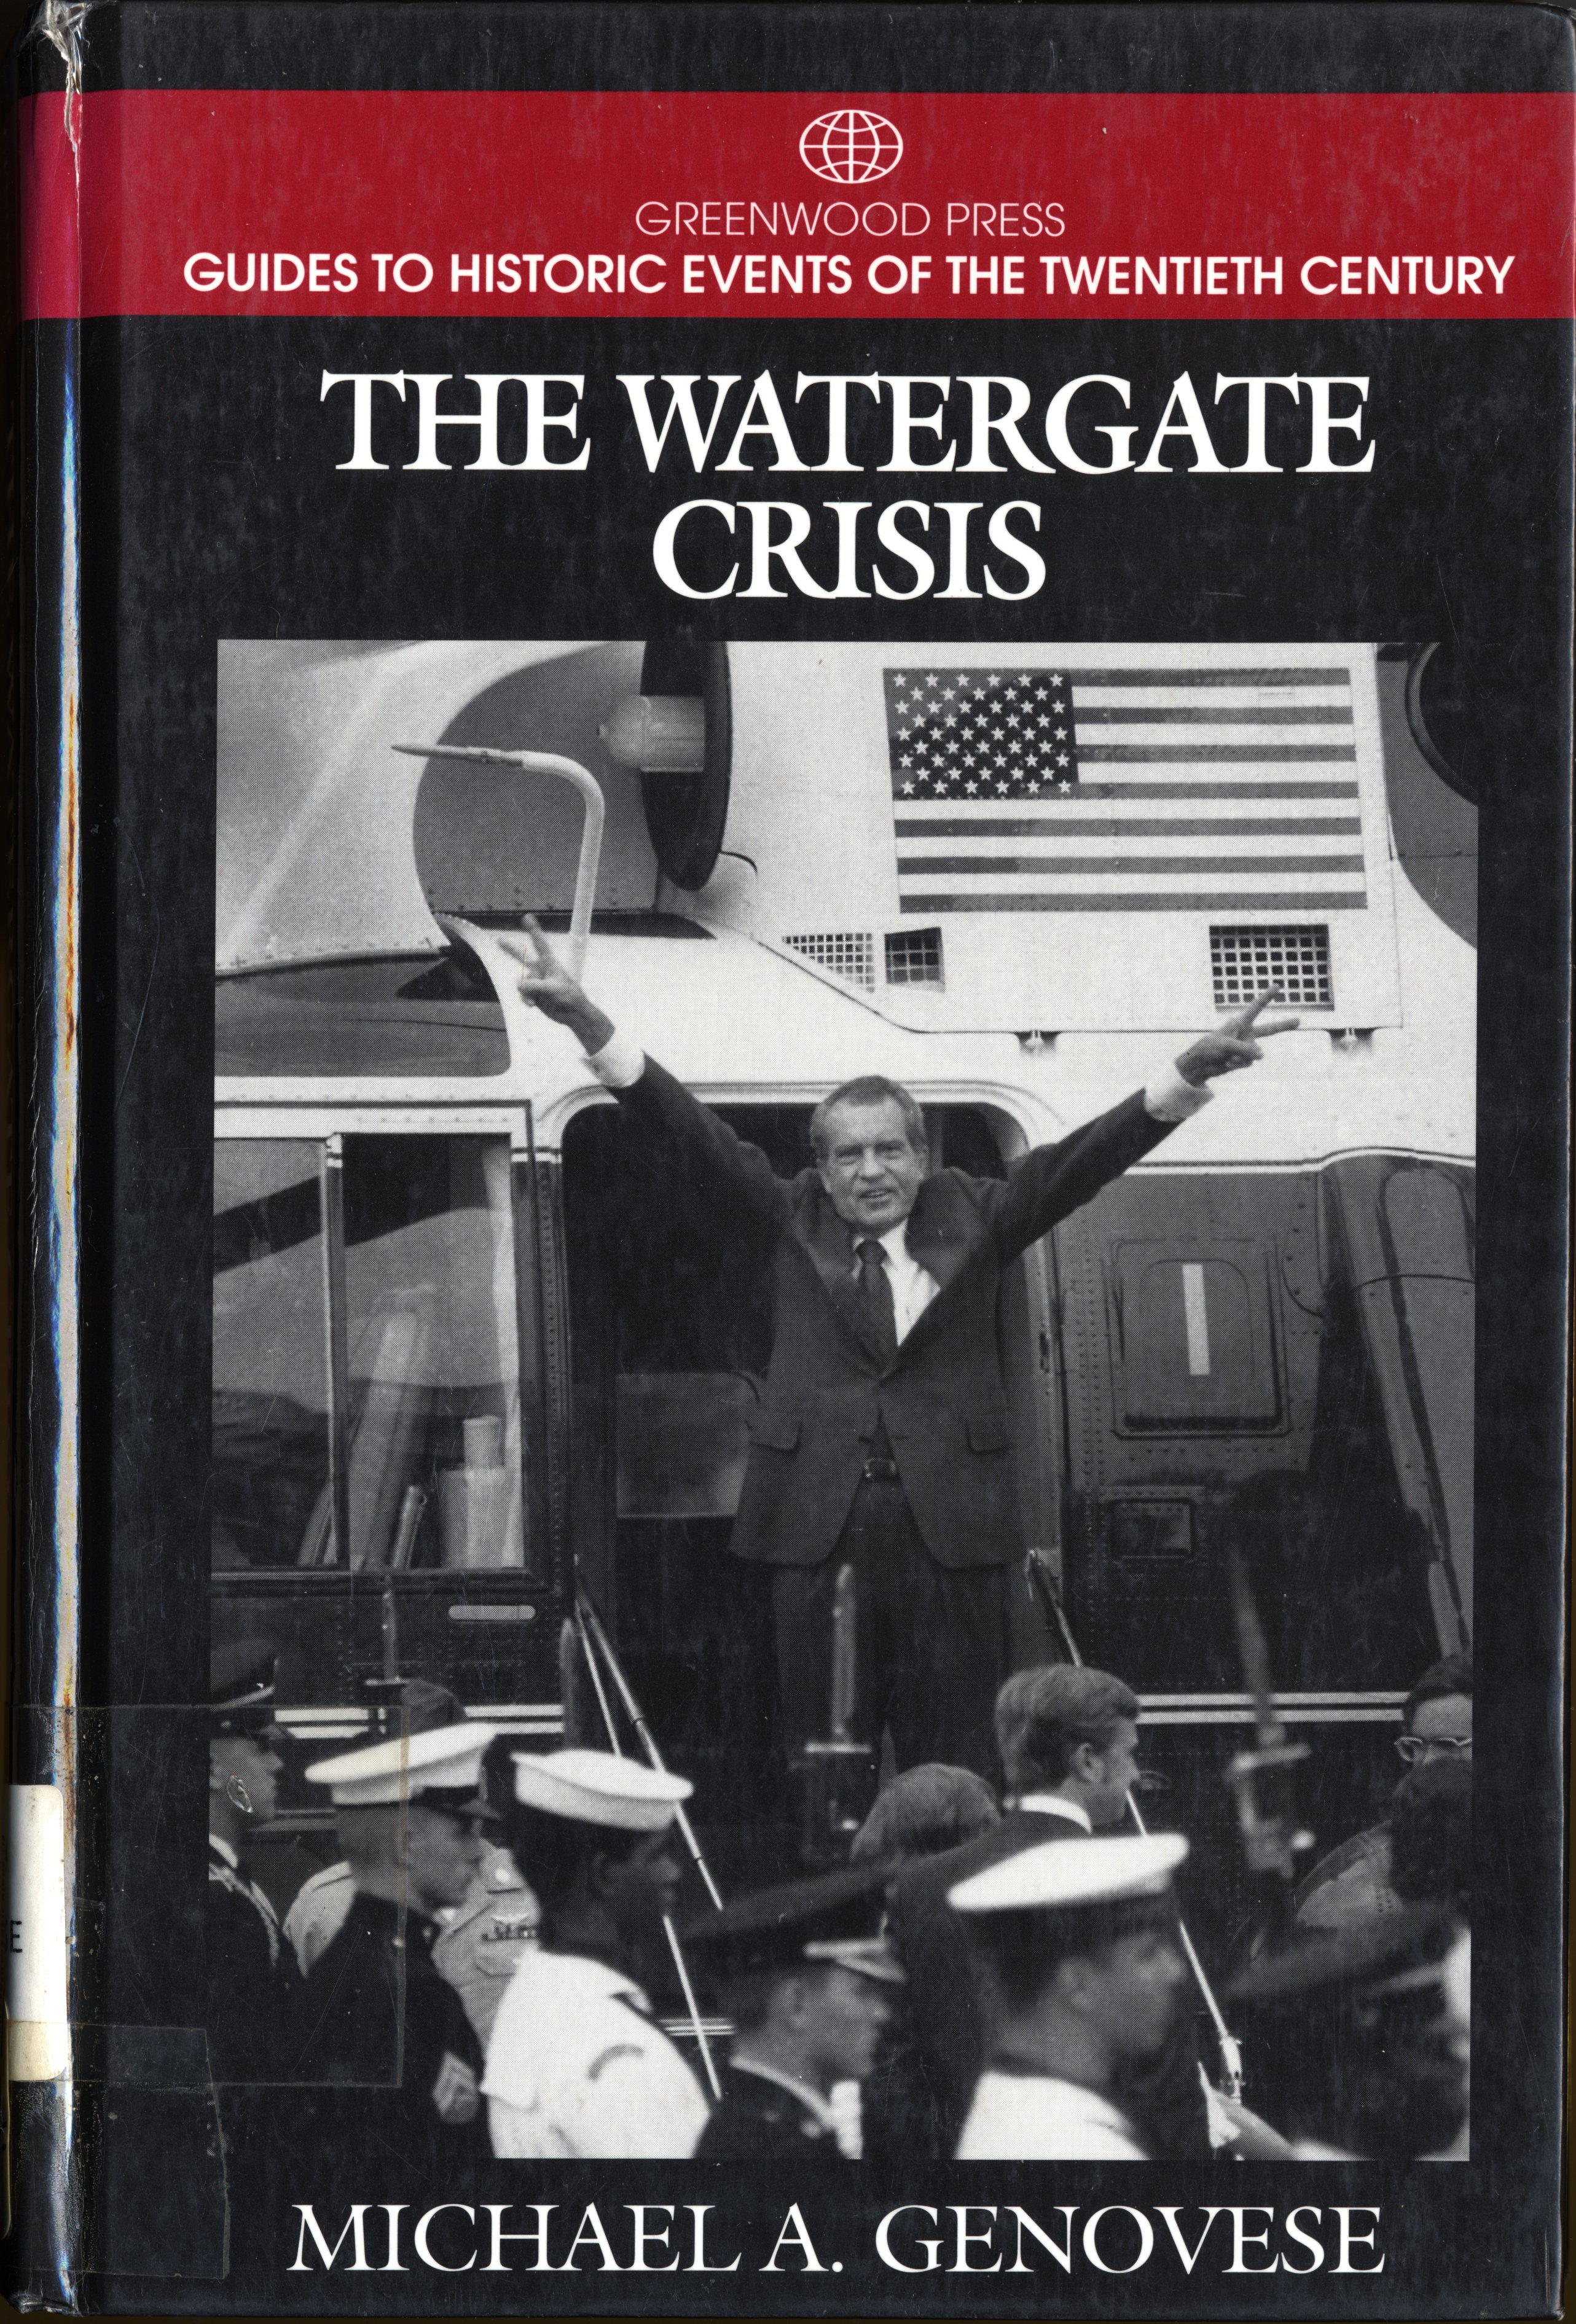 an analysis of the watergate affair Background when richard nixon resigned in 1974 in the wake of the watergate scandal,  watergate and the constitution  document analysis worksheet.